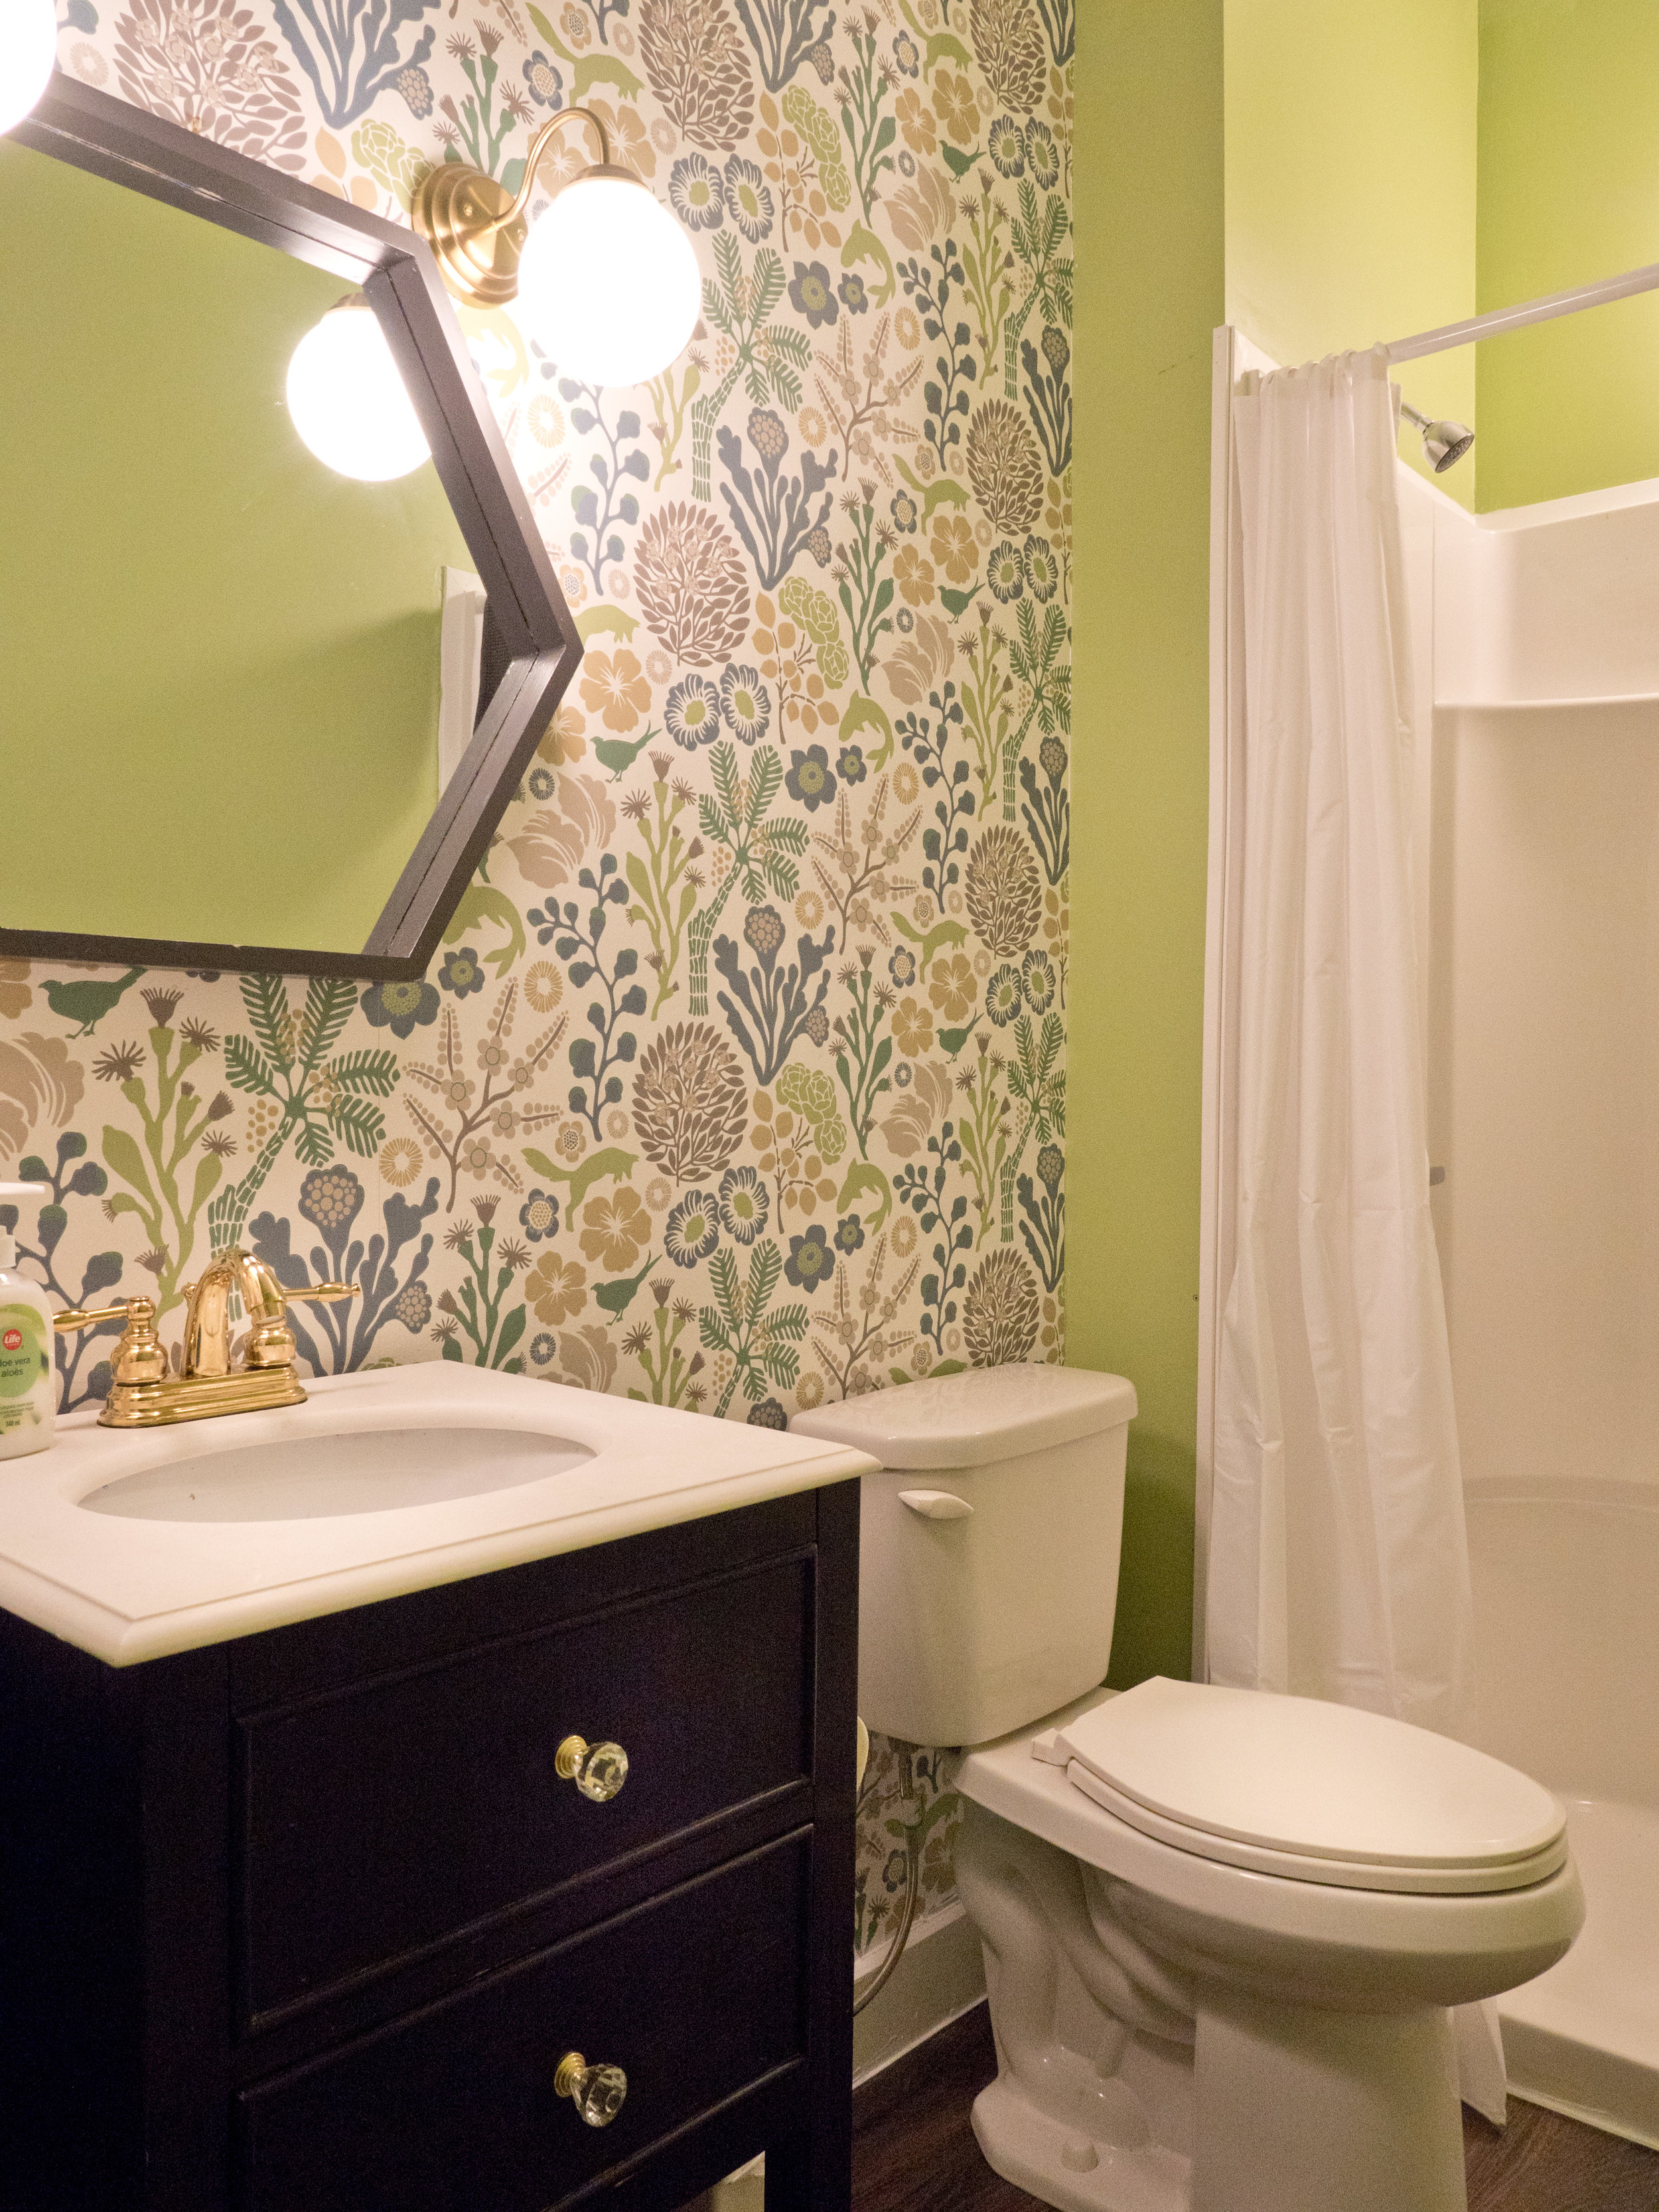 Bathrooms - We have three shared restrooms complete with showers. They're gender-neutral and completely separate so that your business can remain your business.